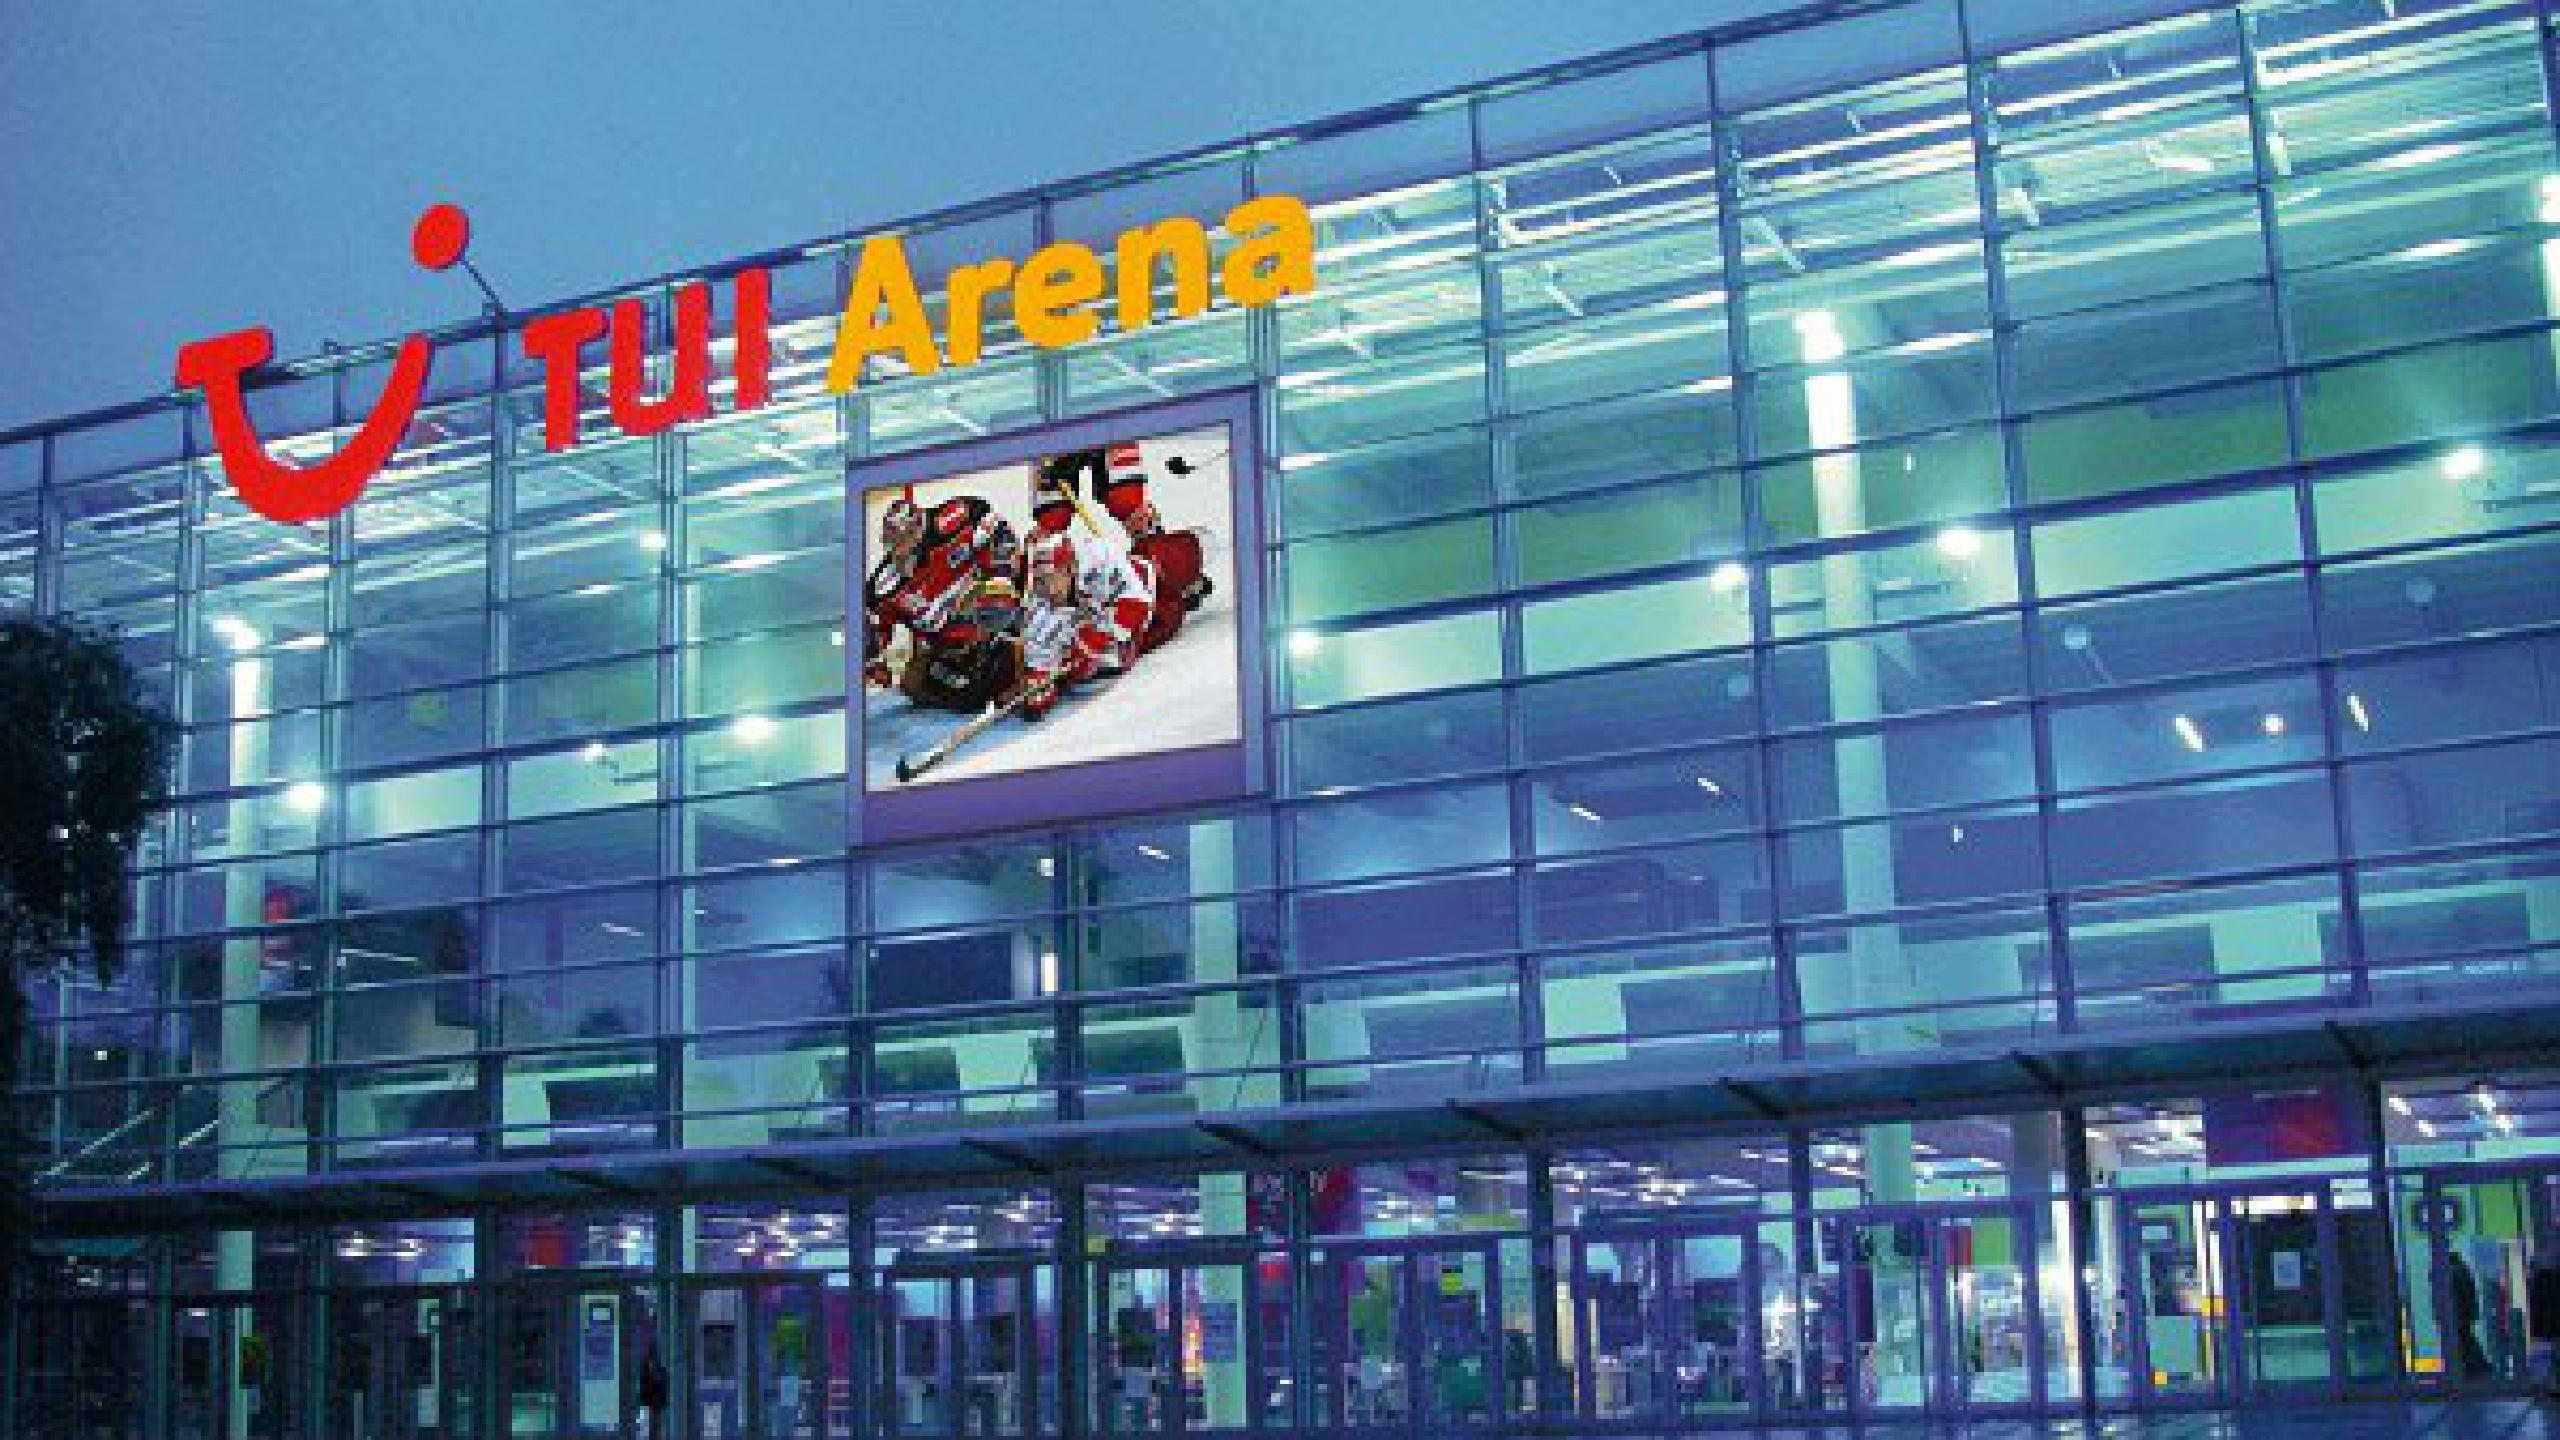 Expo Plaza Hannover Tui Arena Tickets And Concerts 2019 2020 Wegow United States